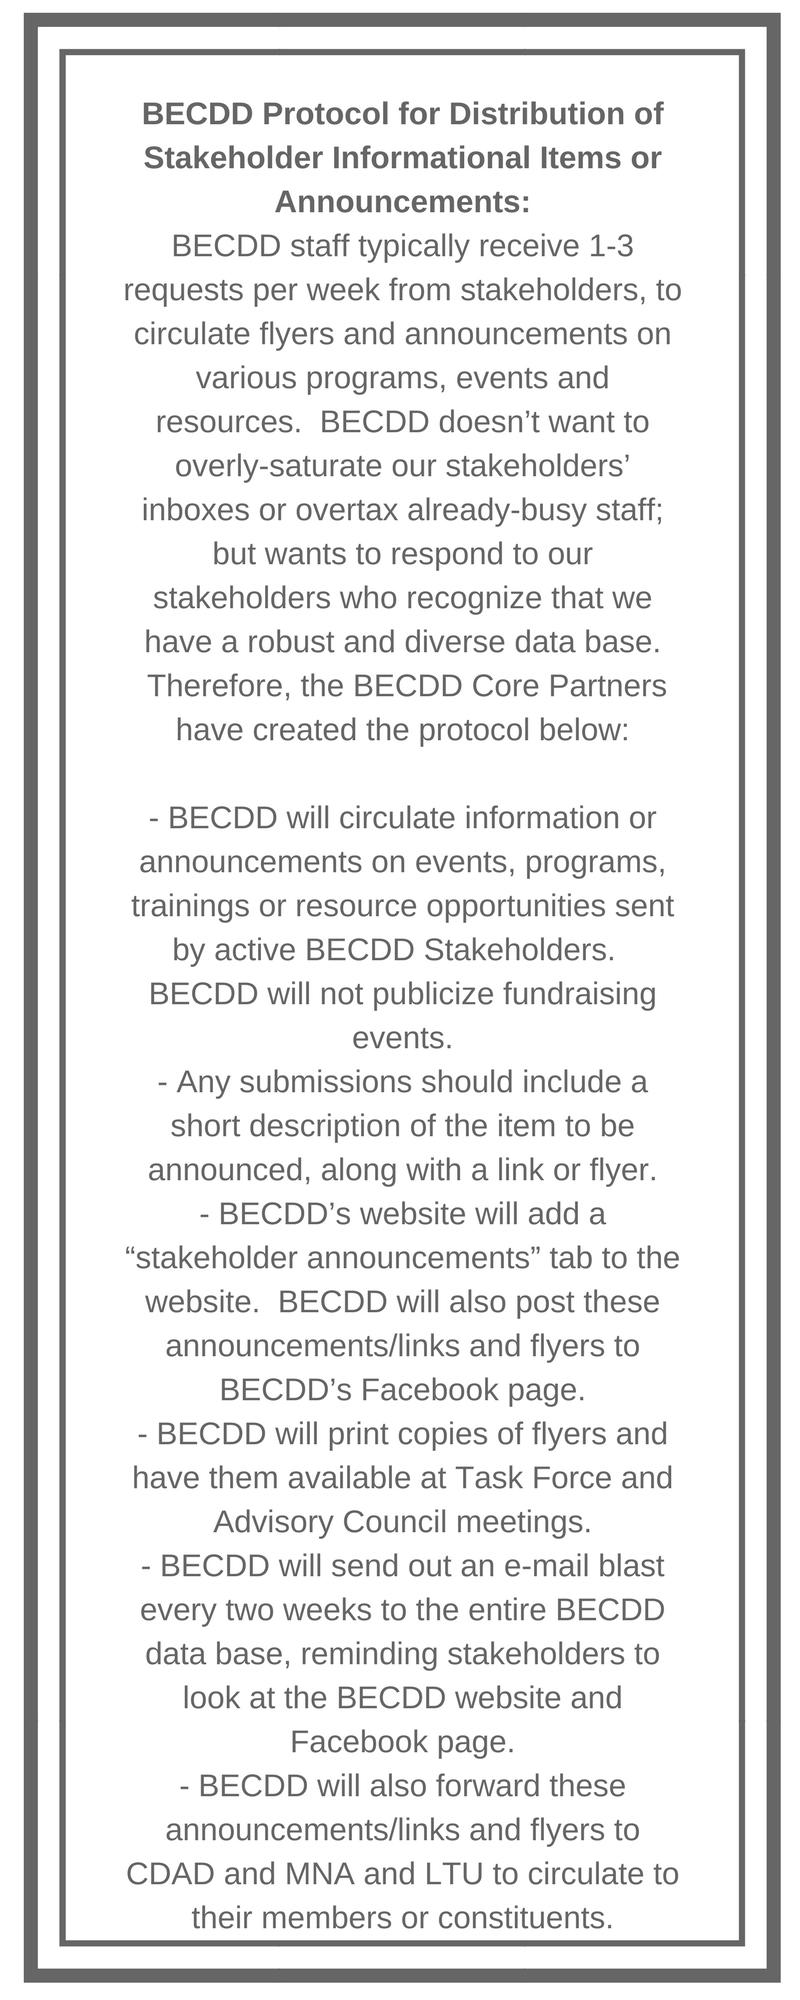 BECDD Protocol for Distribution of Stakeholder Informational Items or Announcements_BECDD staff typically receive 1-3 requests per week from stakeholders, to circulate flyers and announcements on various programs.png